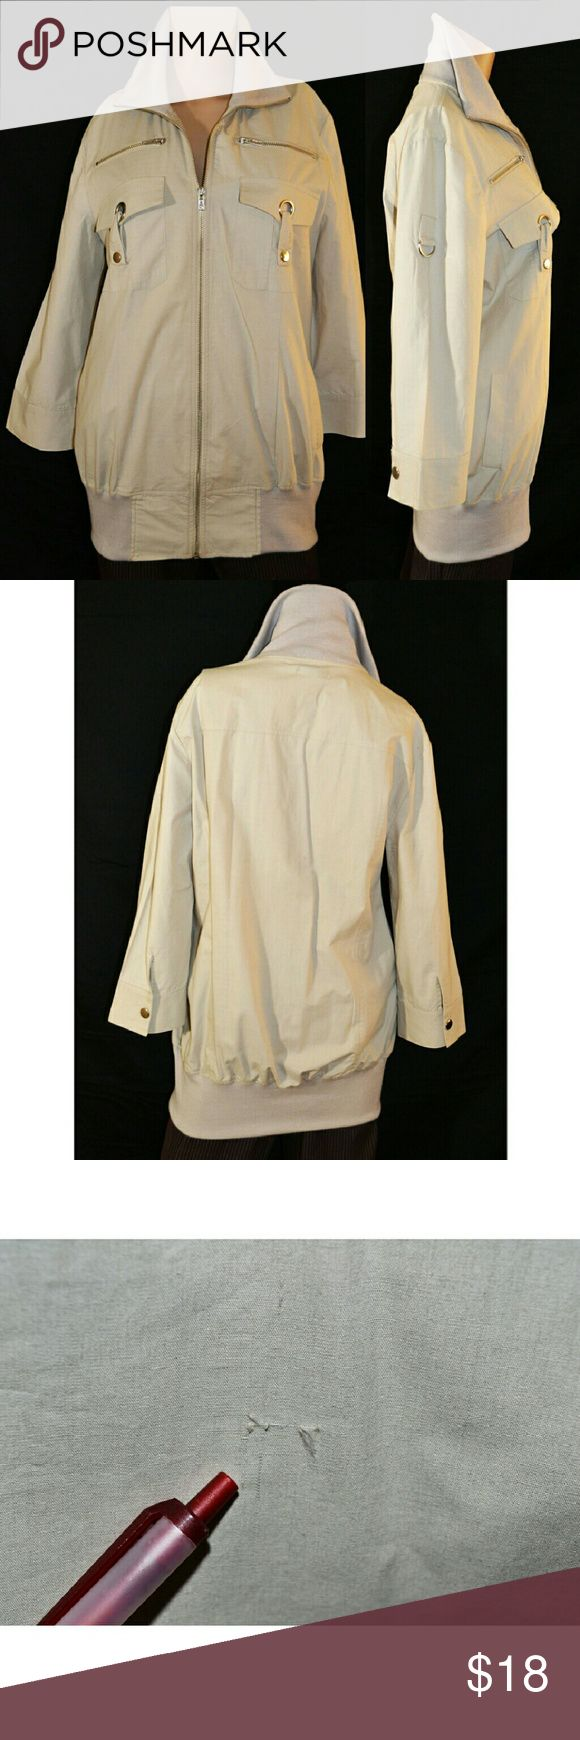 Rhapsody women's beige zip up light jacket. New with tag beige long jacket. One tear on the back side of jacket. 100% cotton. Measurements: length - 30in, pit-to-pit  - 20.5in, sleeve - 19in. Rhapsody Jackets & Coats Blazers